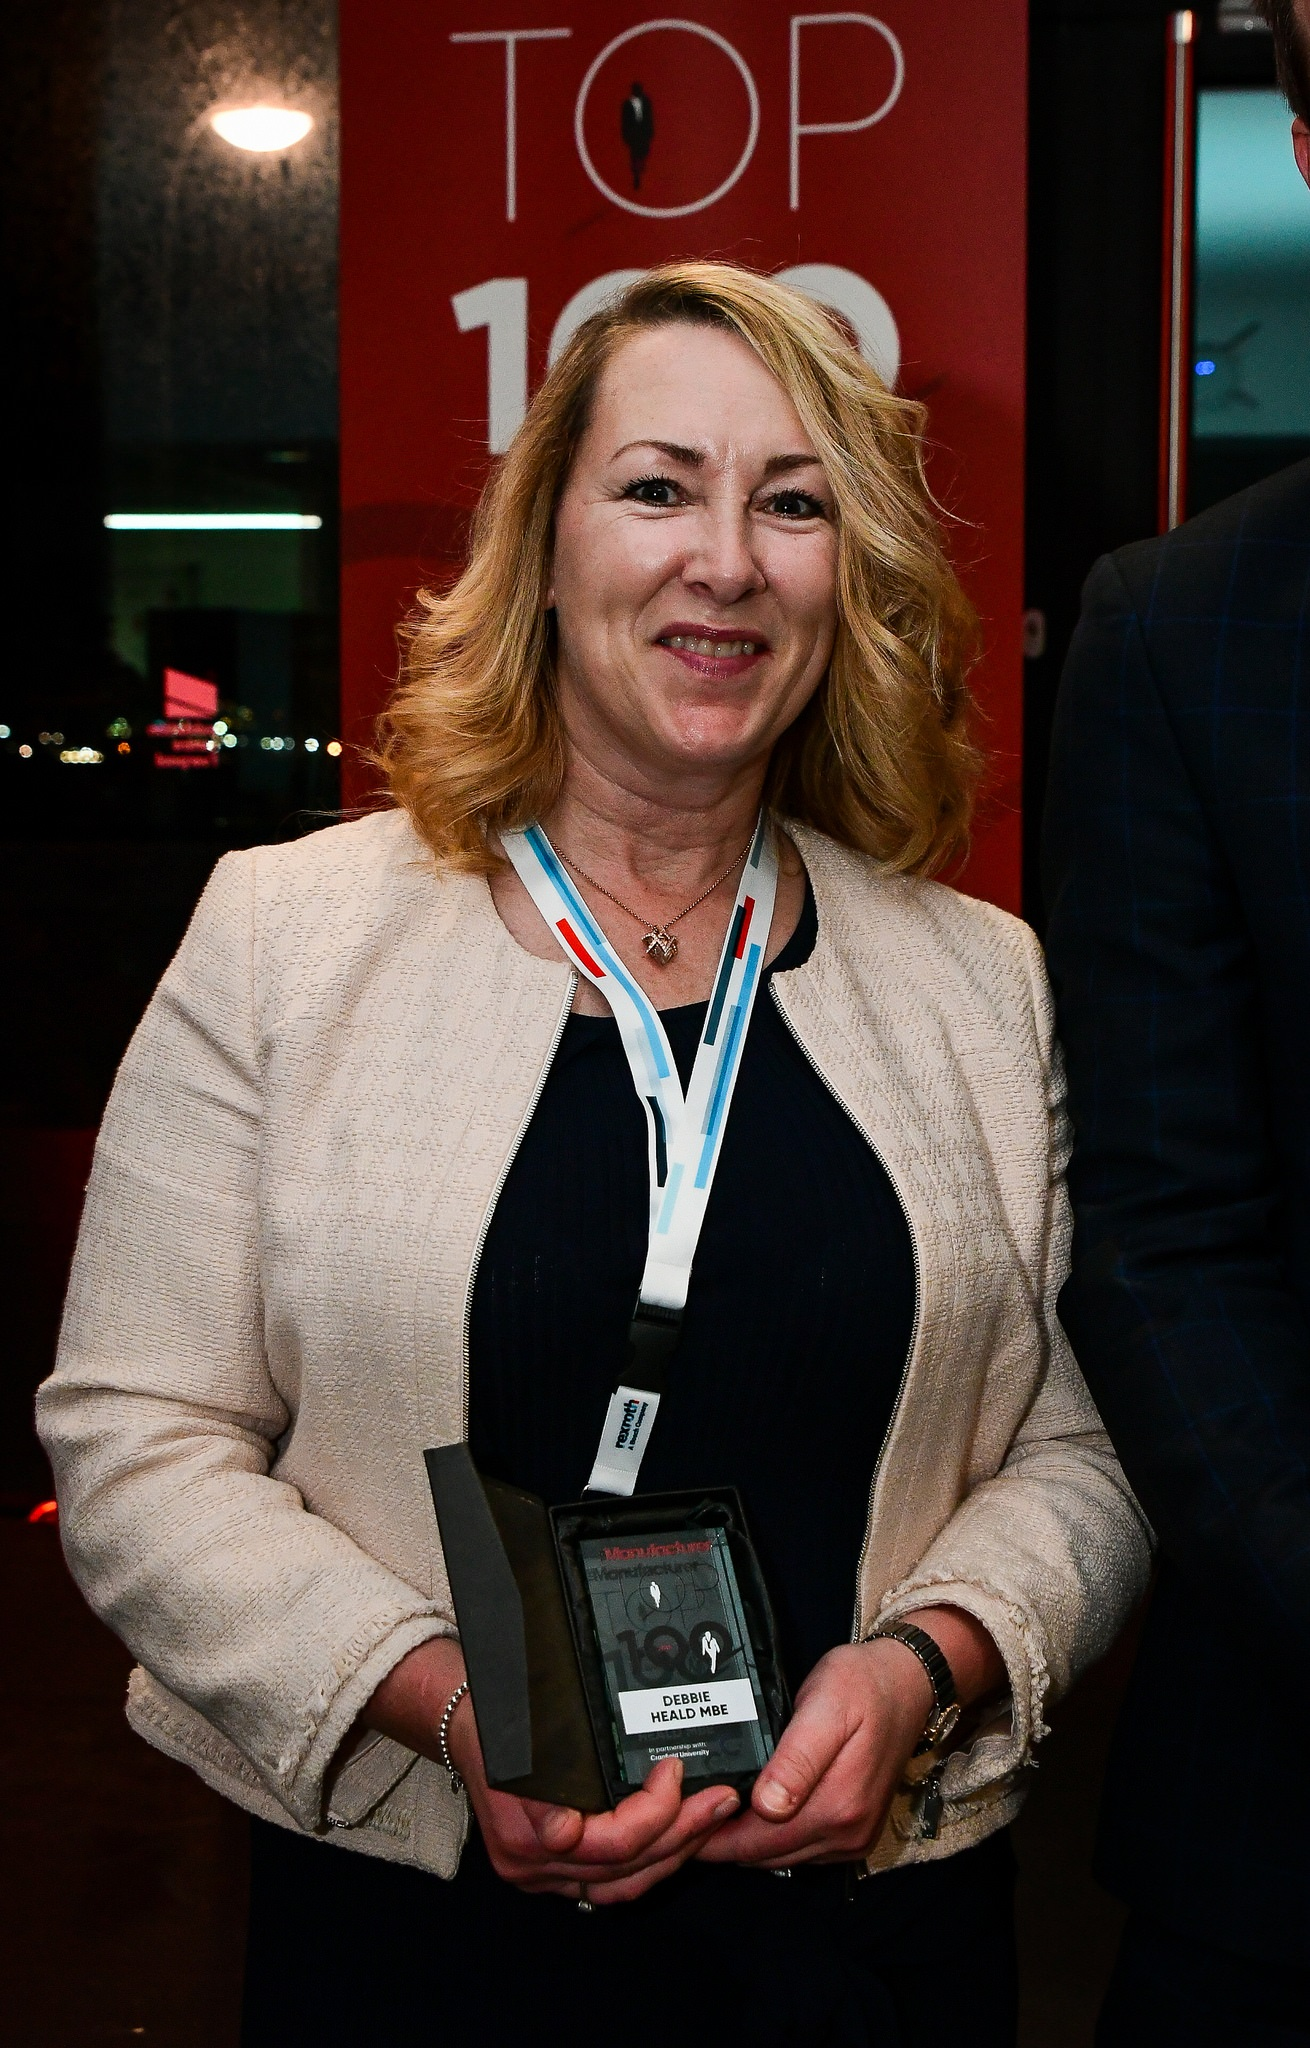 Managing director, Debbie Heald was highlighted as an exemplar in The Manufacturer's Top 100.